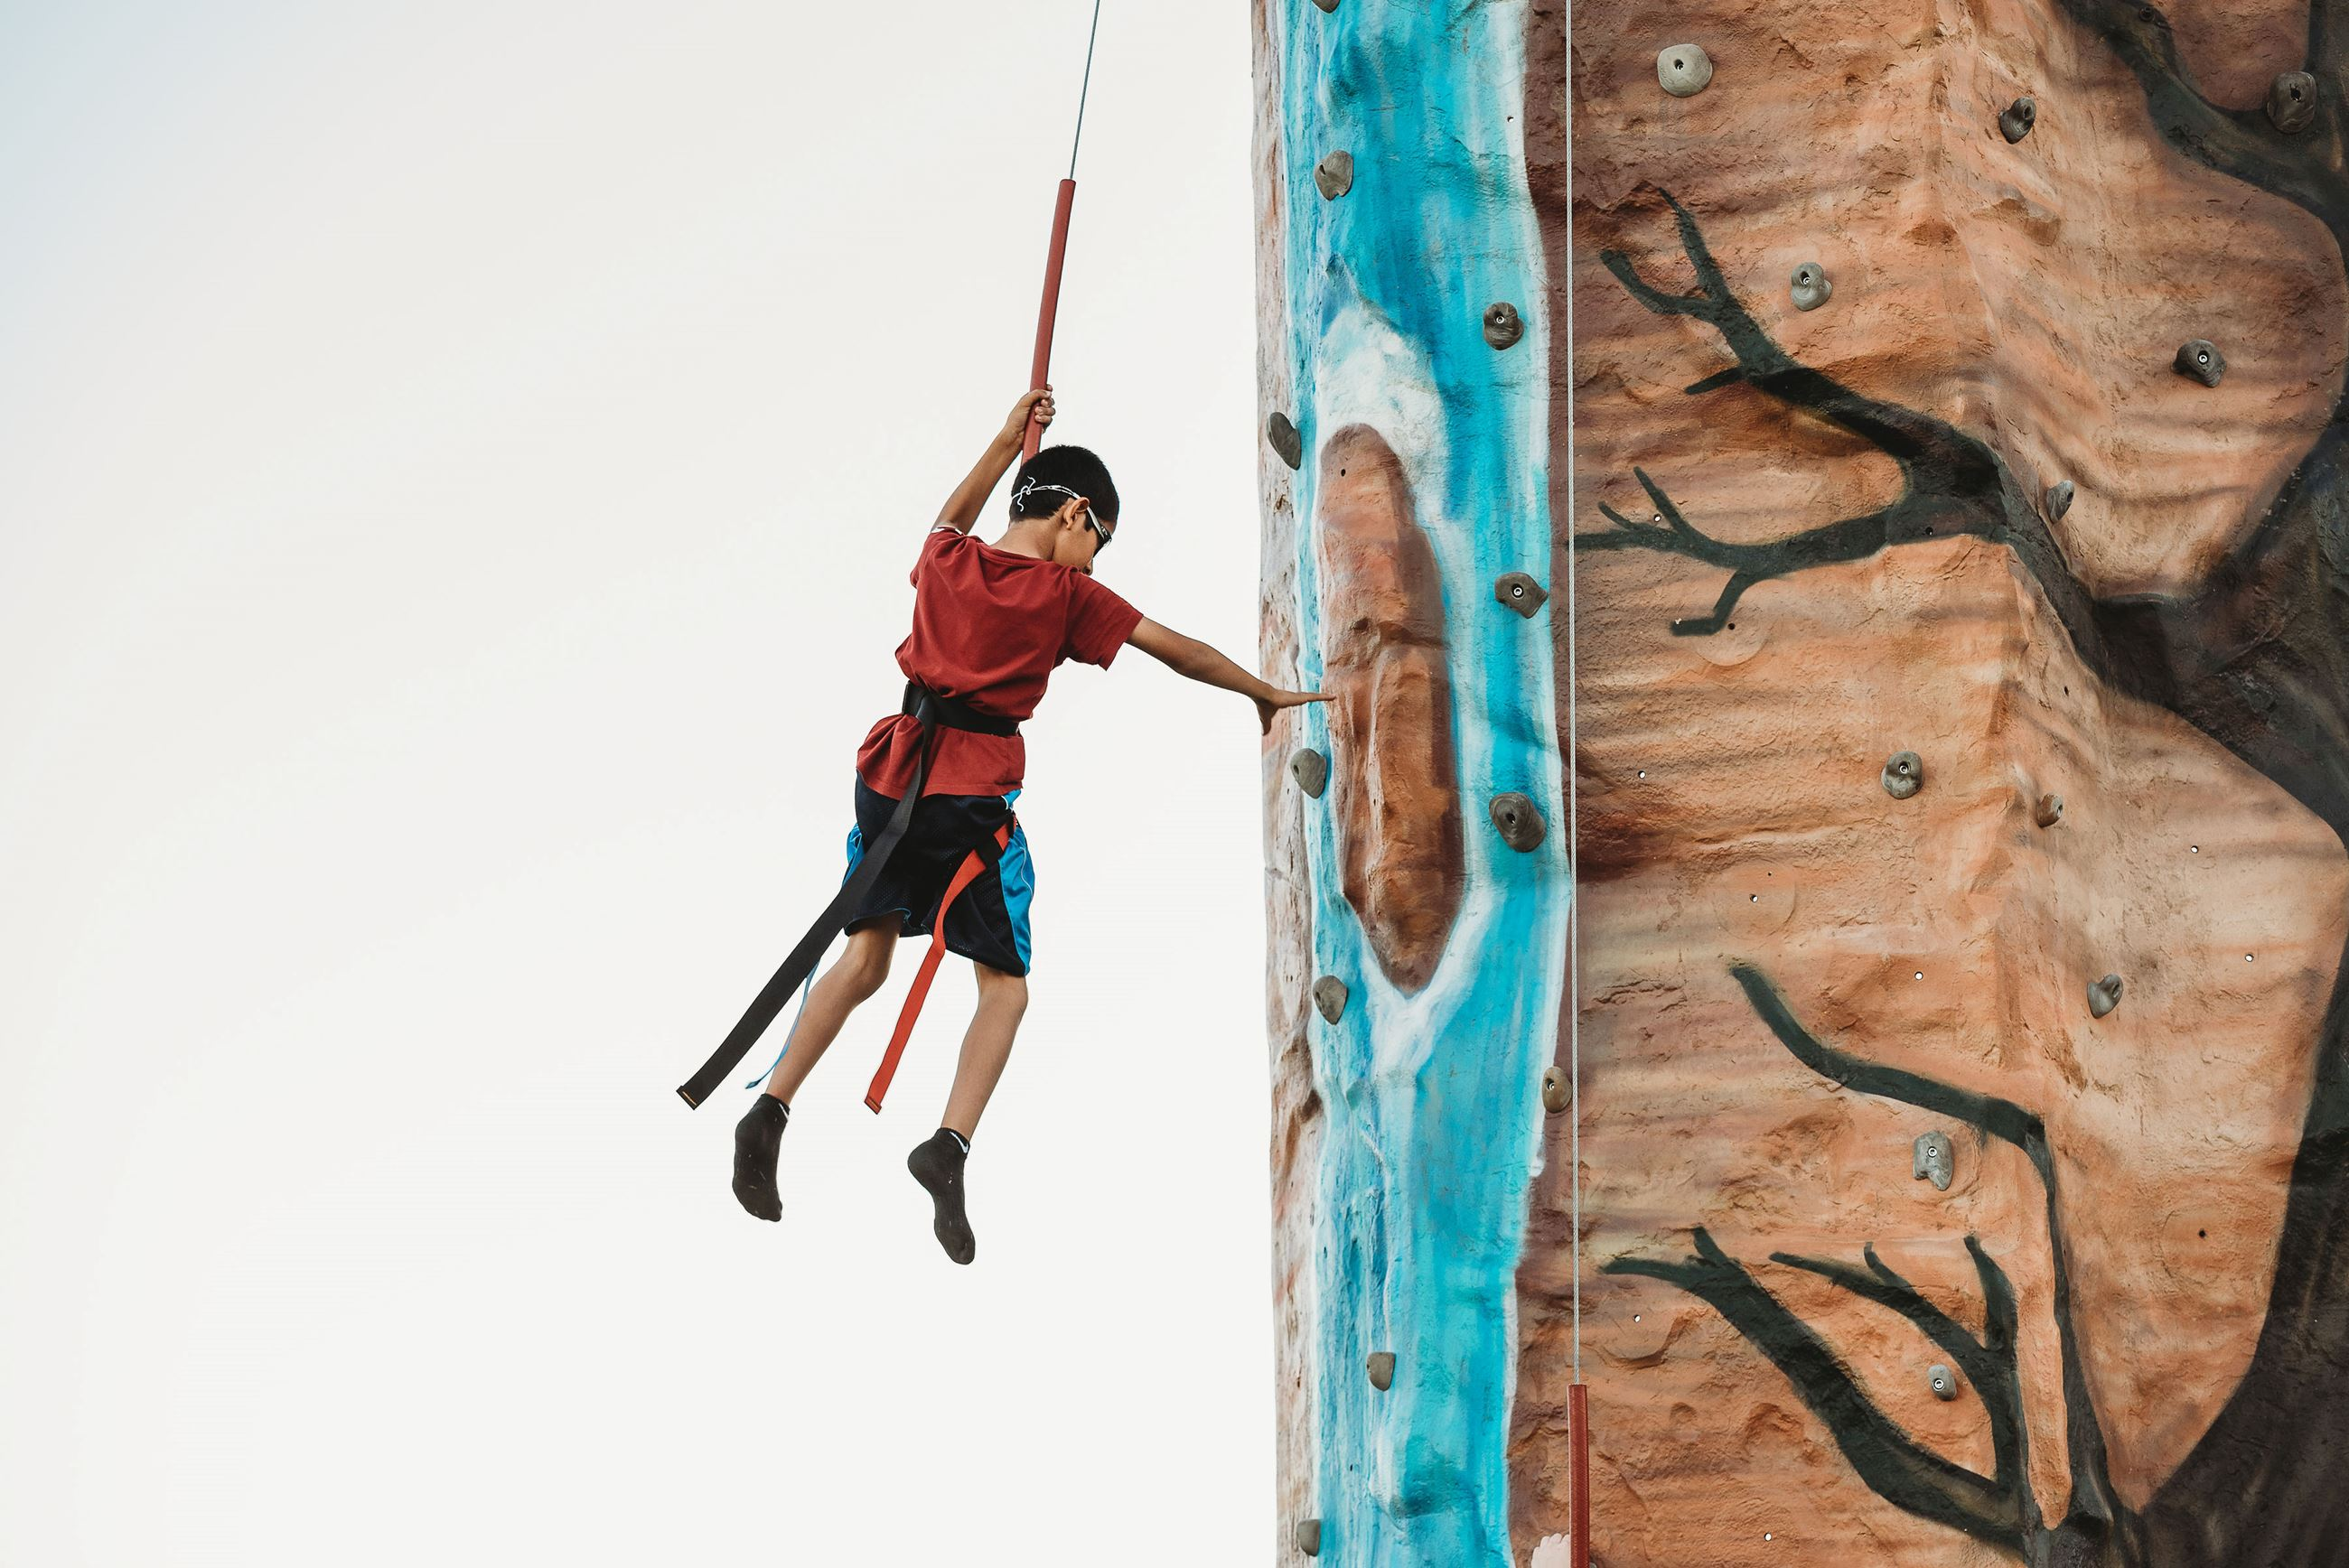 Boy in a Red Shirt Carefully Hops down a Rock Climbing Wall